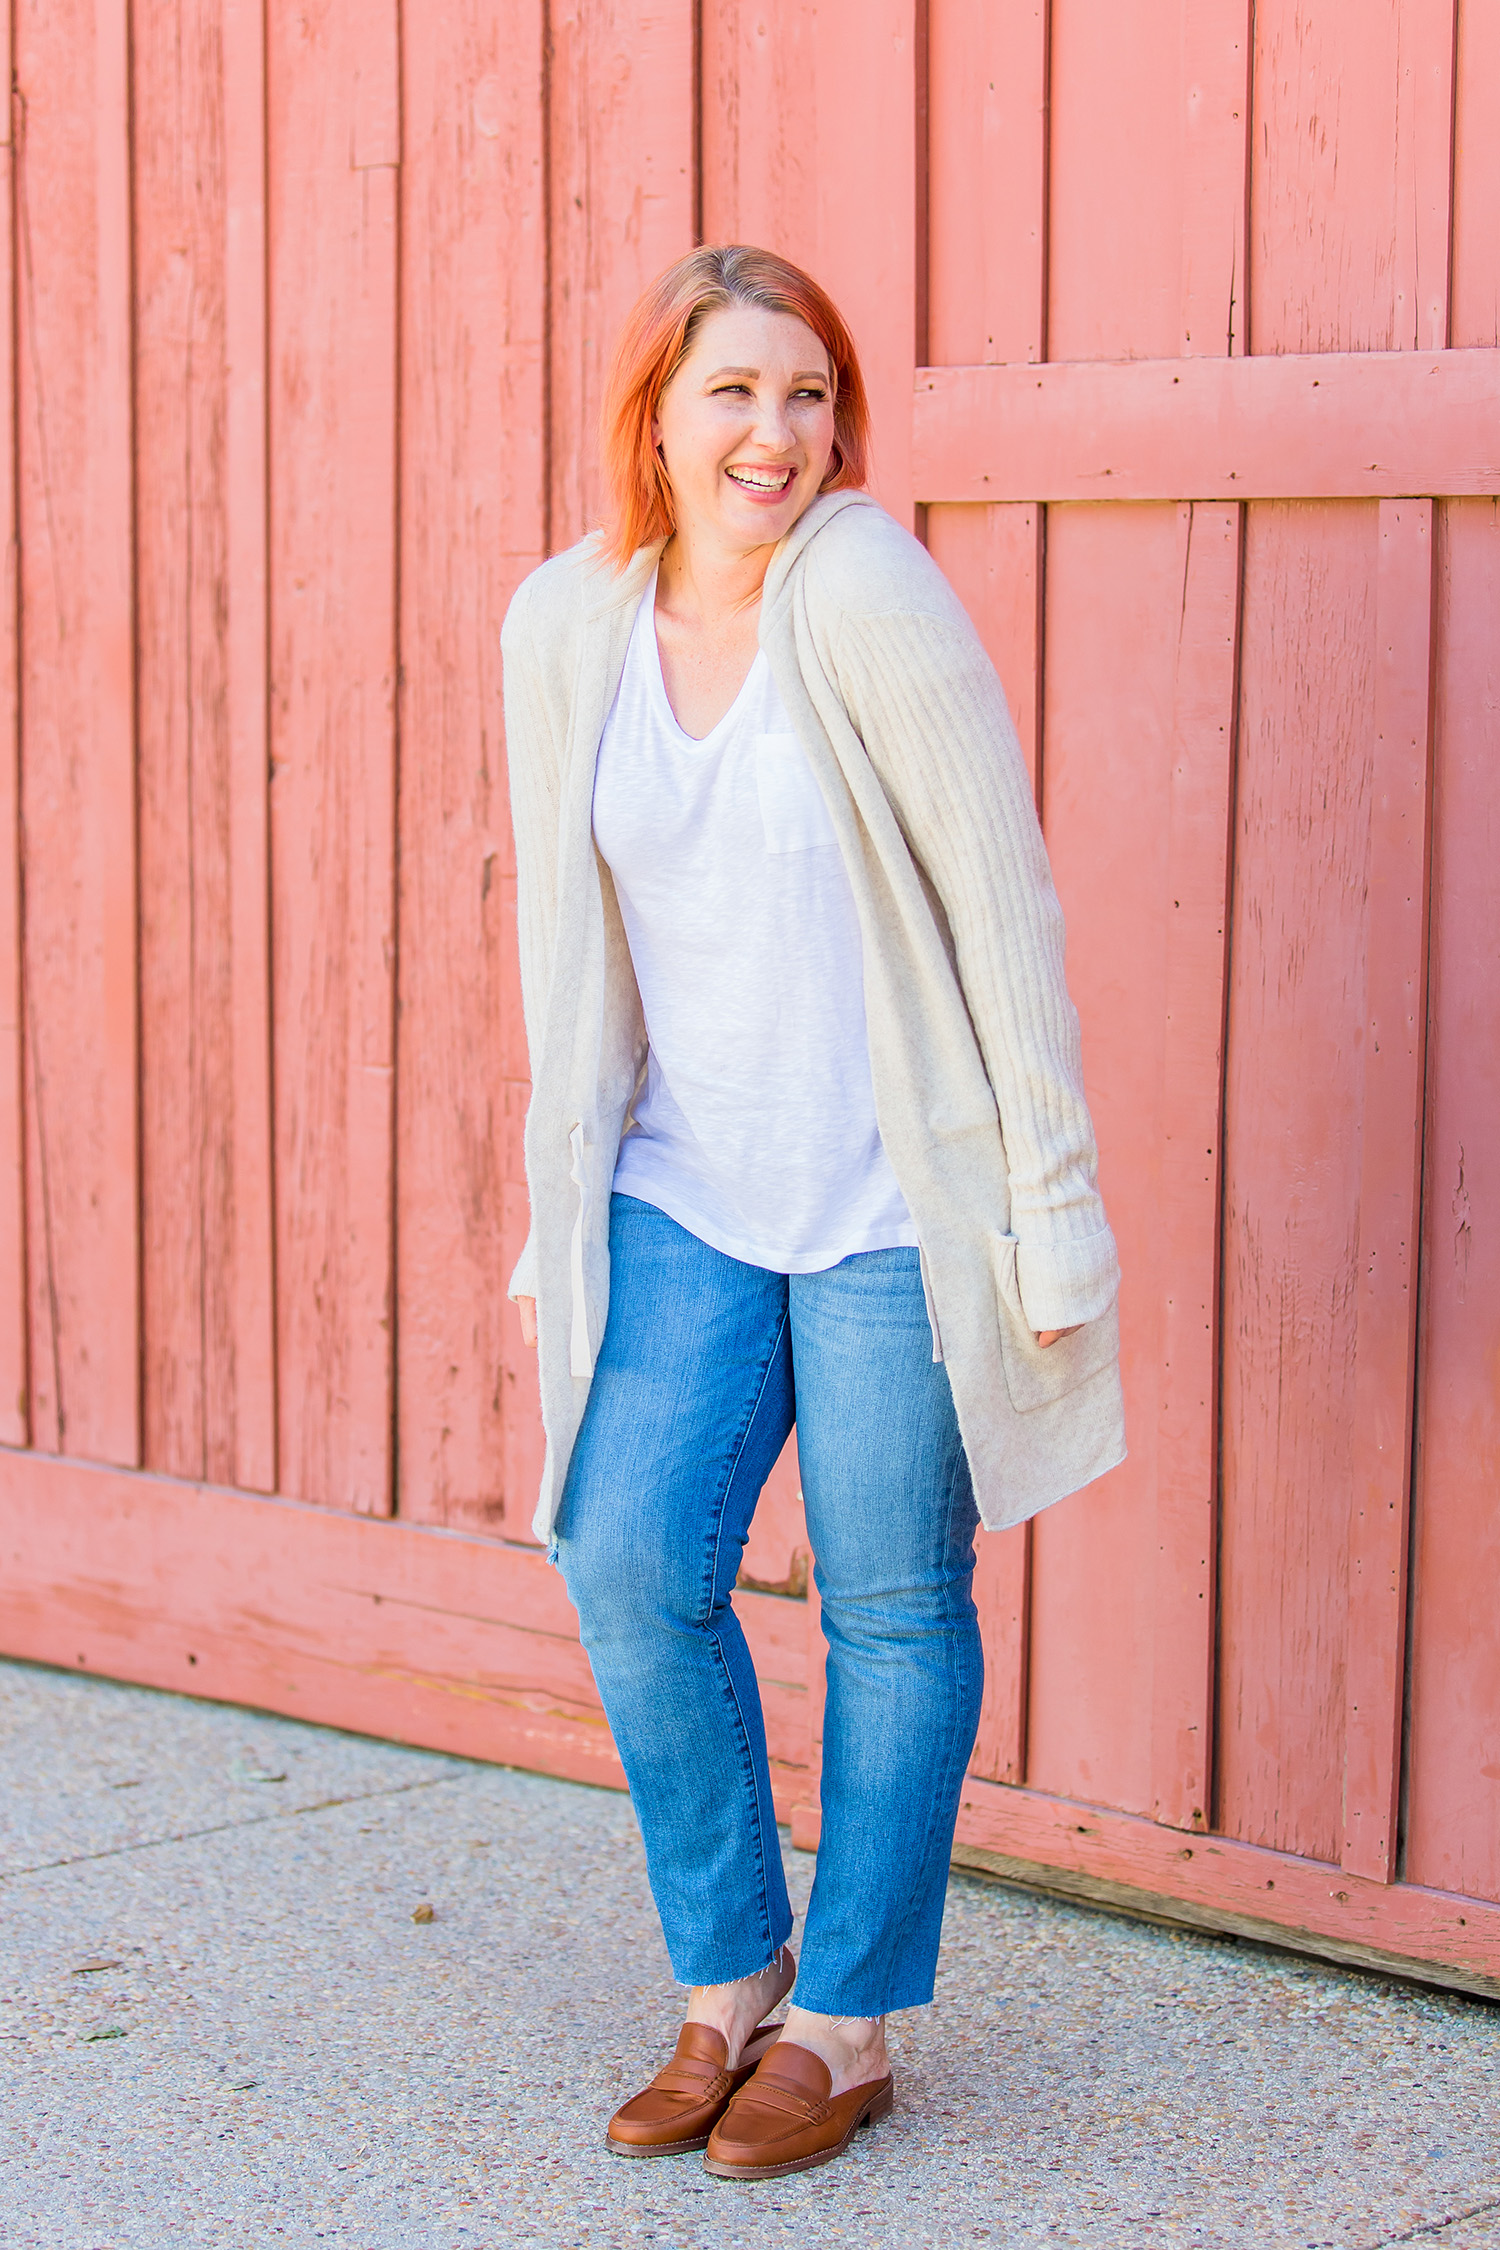 Fall outfits inspiration: I love these straight leg jeans and that hooded sweater!